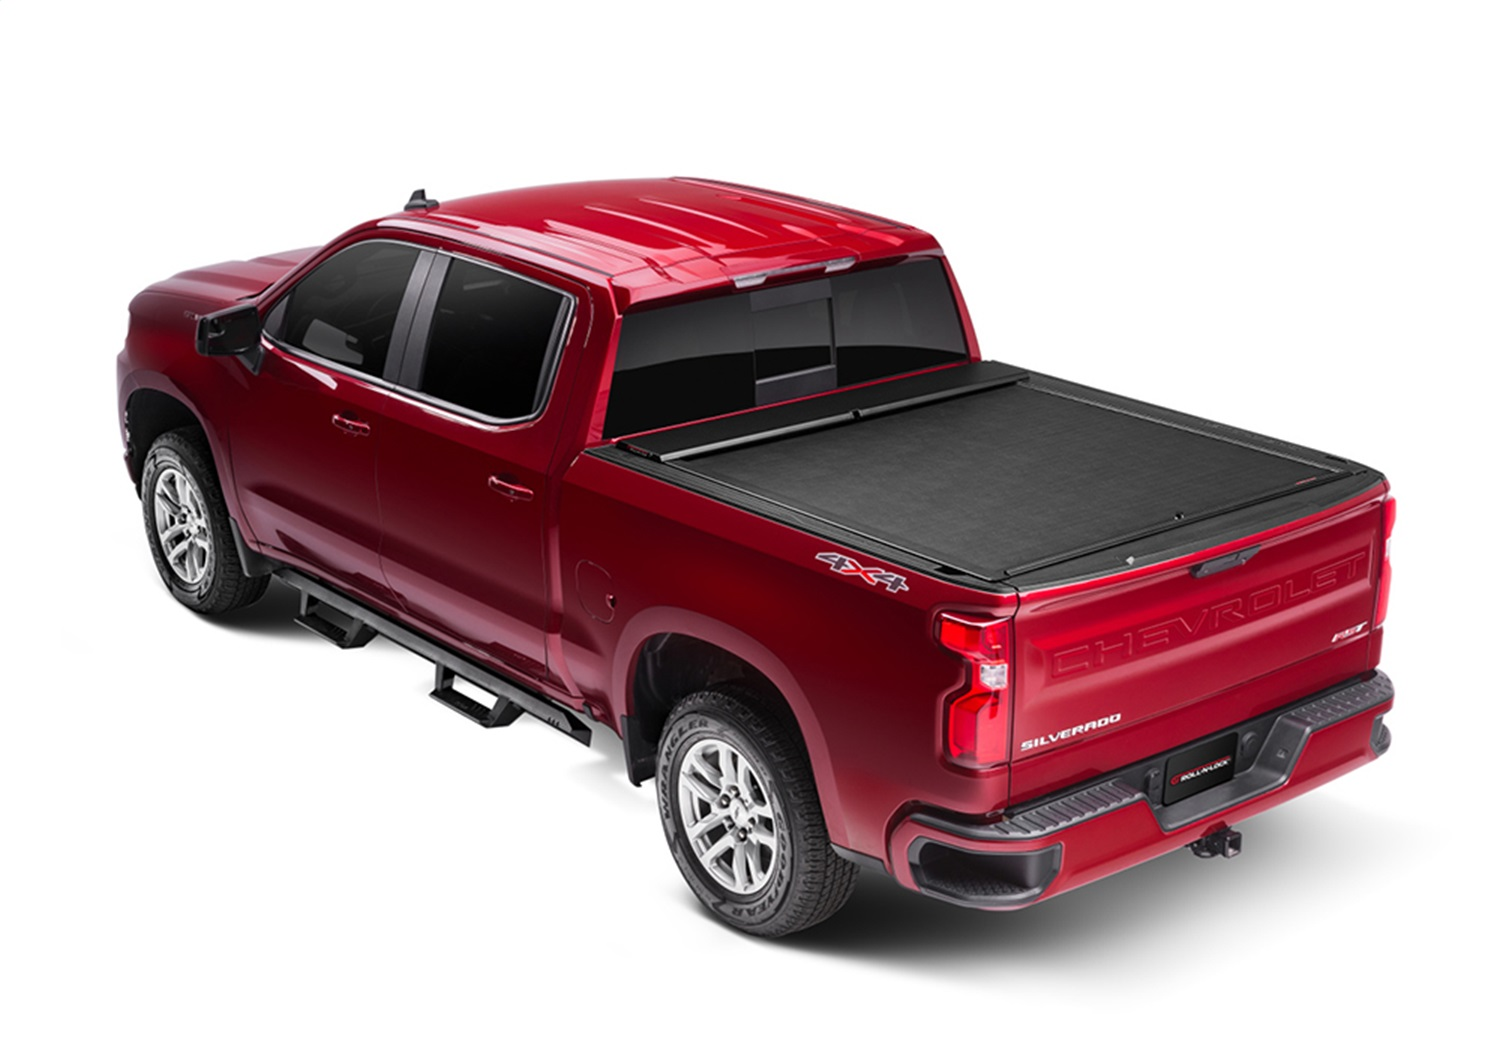 Roll-N-Lockr M-Series Truck Bed Cover, Manual Retractable, OE Front Cargo Tie Downs Must Be Removed